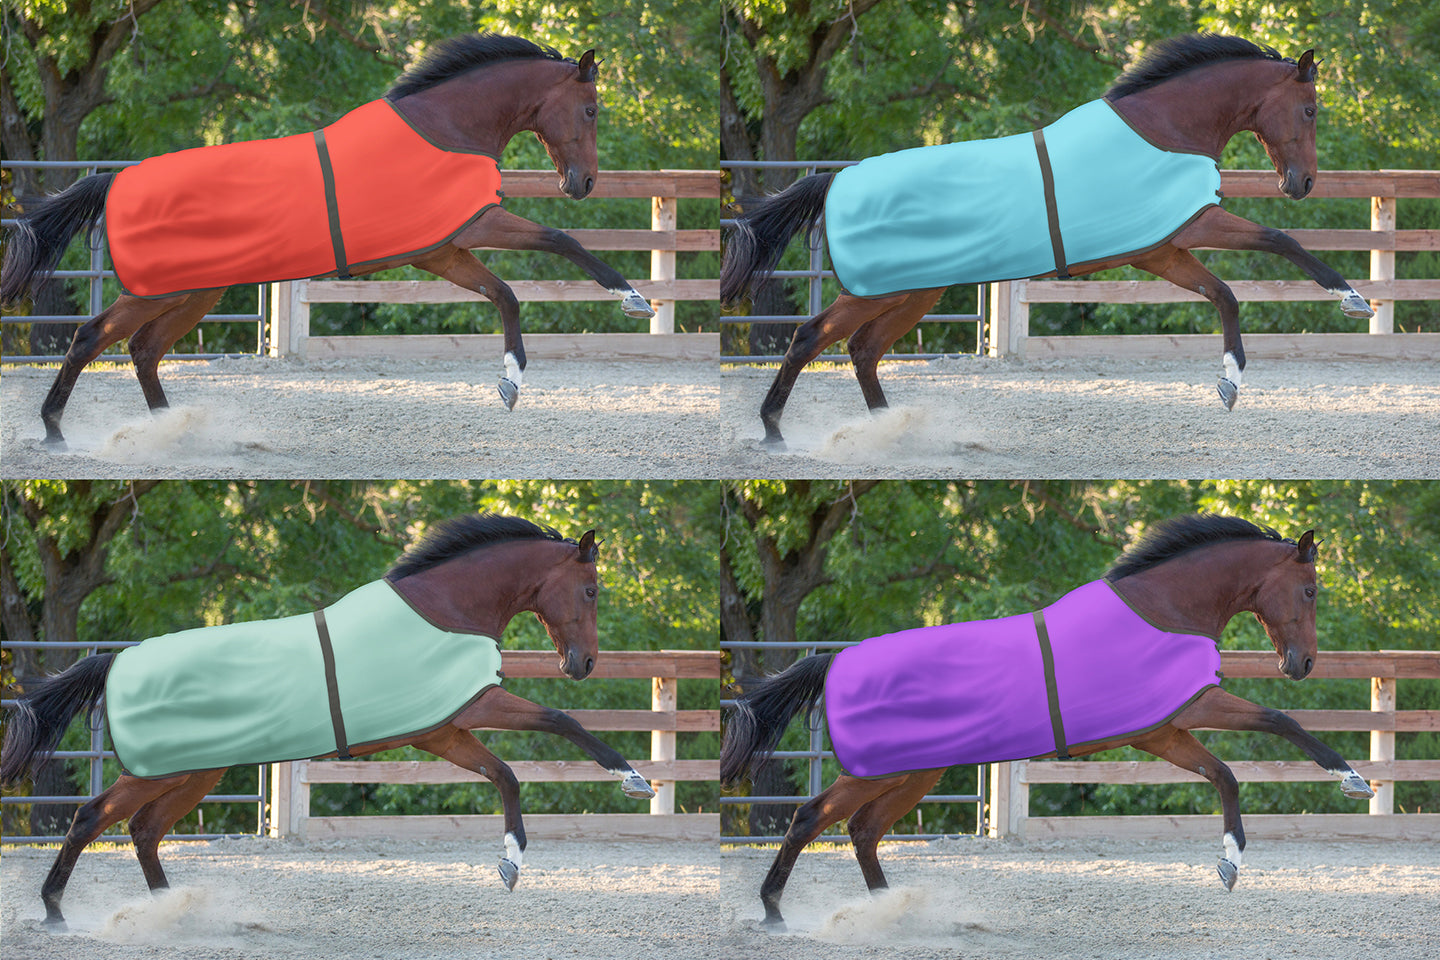 sample equine fabric colors